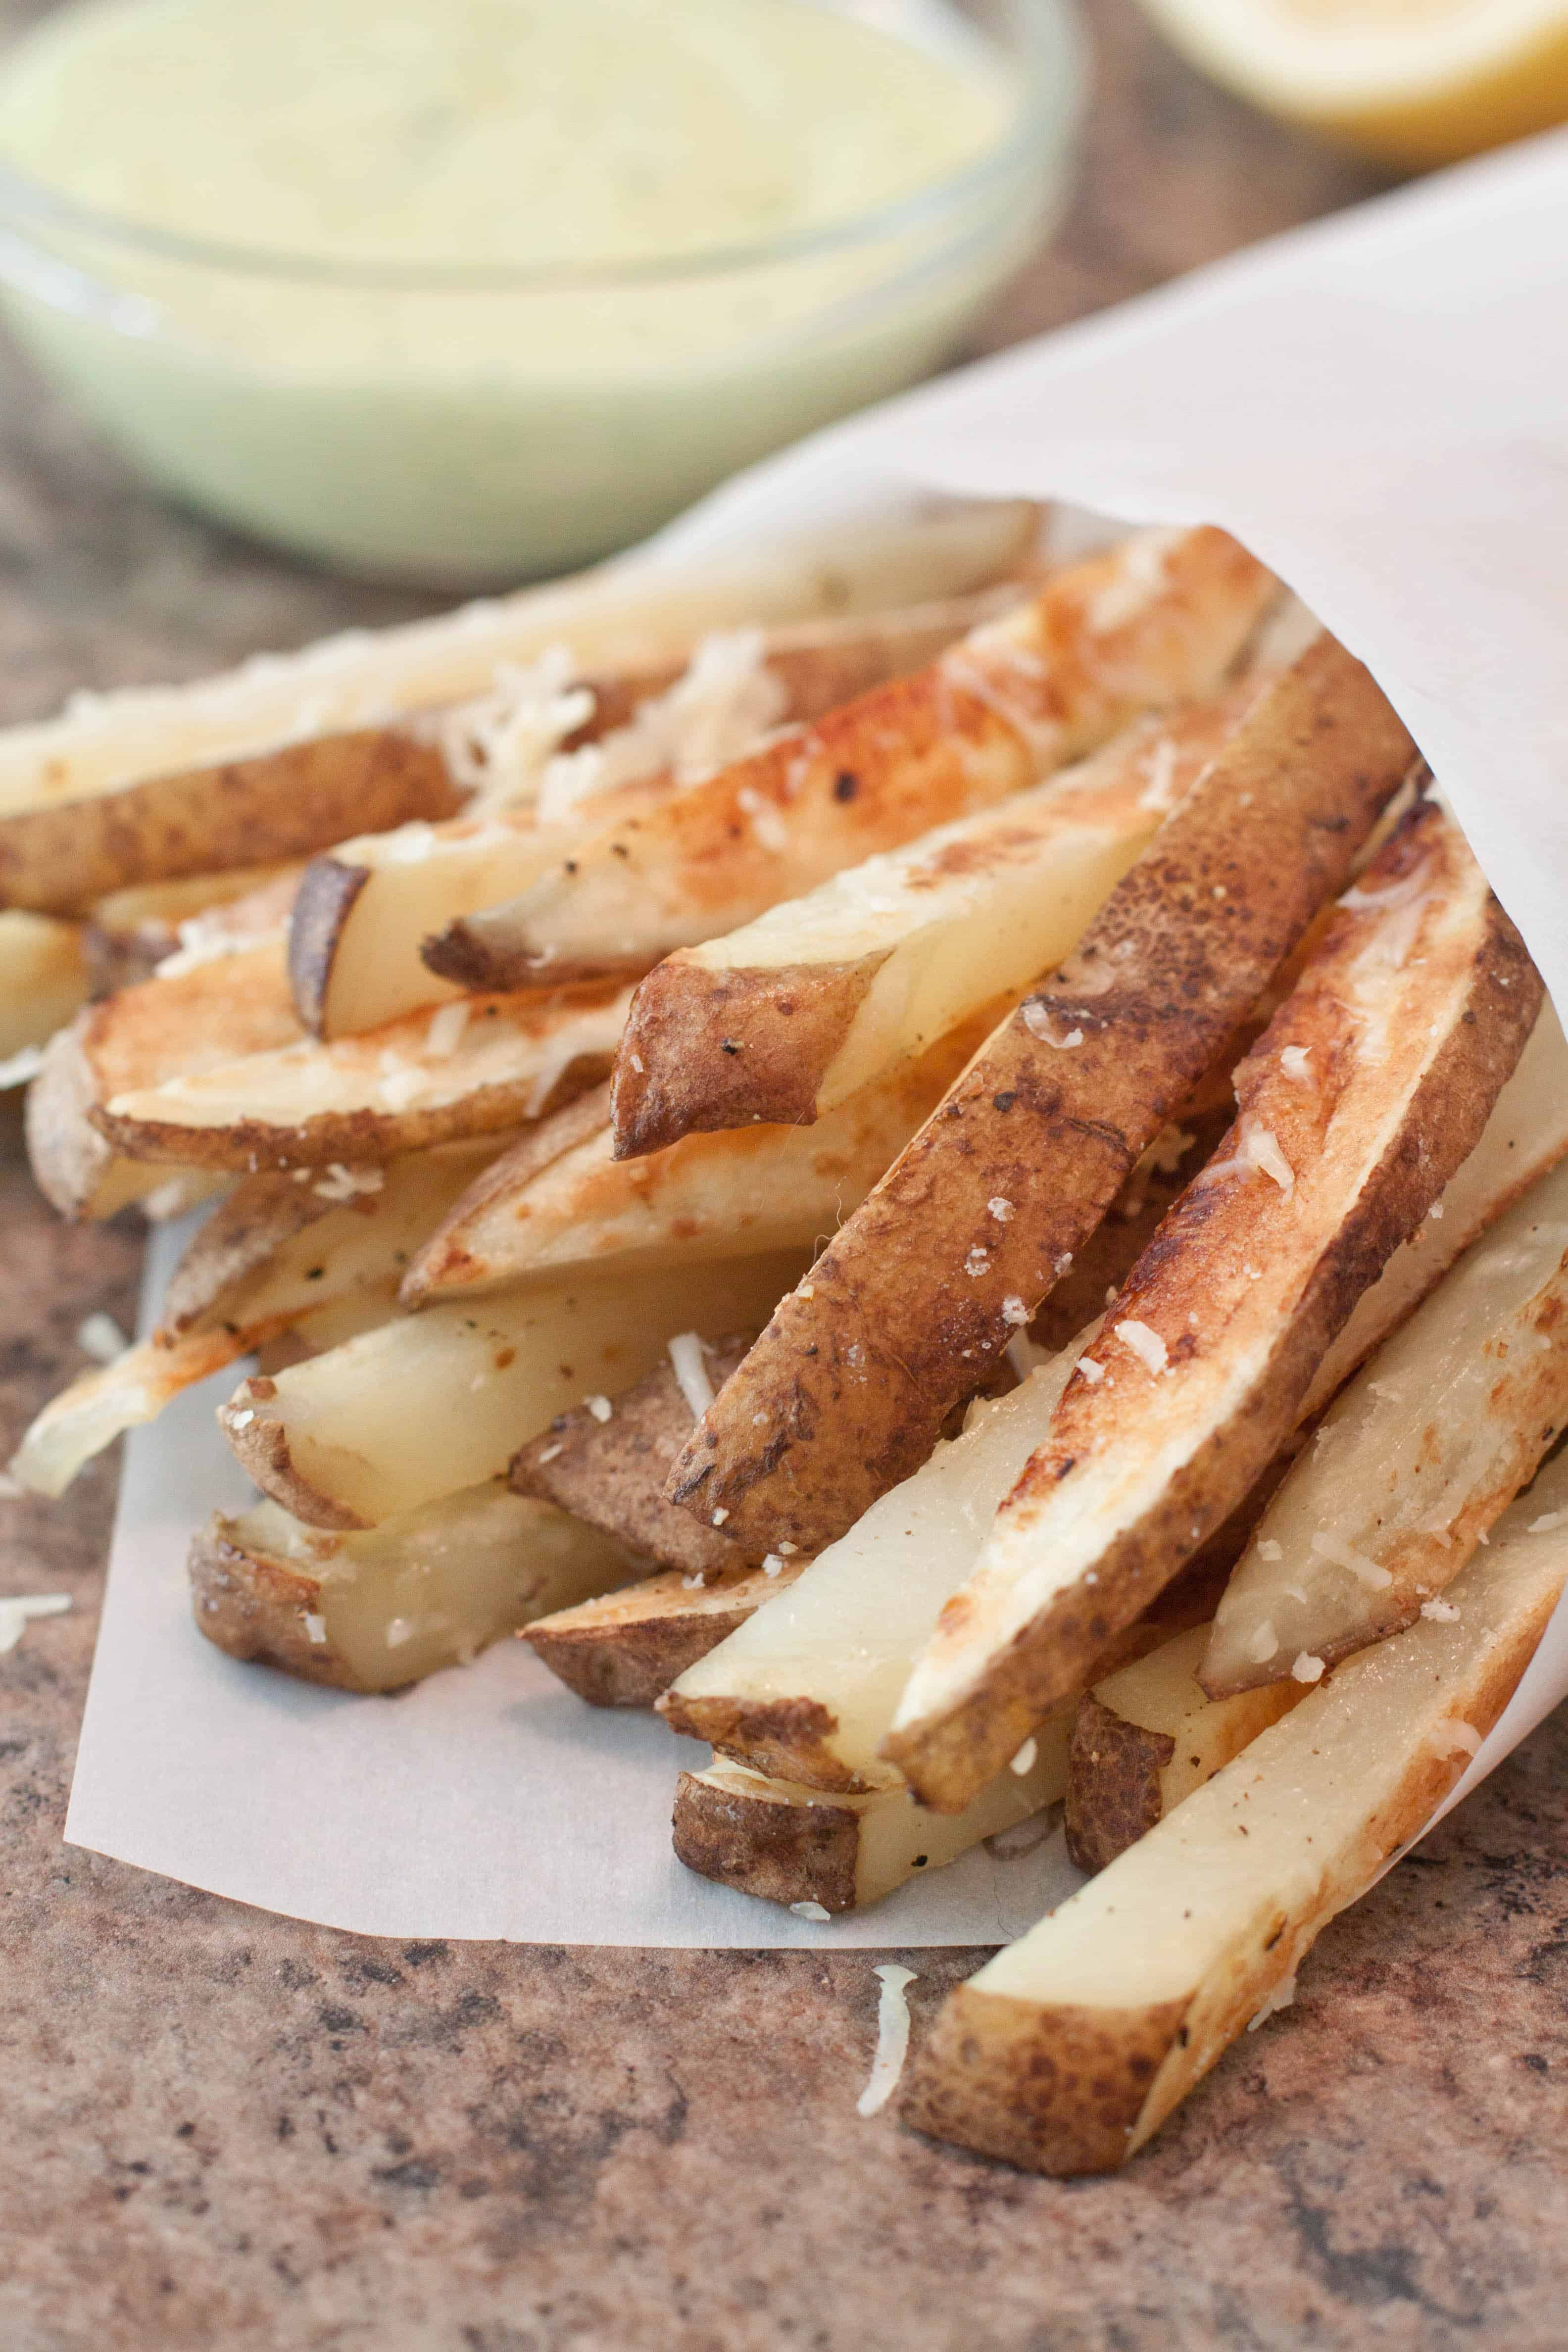 Homemade Baked Parmesan Steak Fries served with a super easy Garlic Aioli are a healthy and delicious alternative for that french fry craving